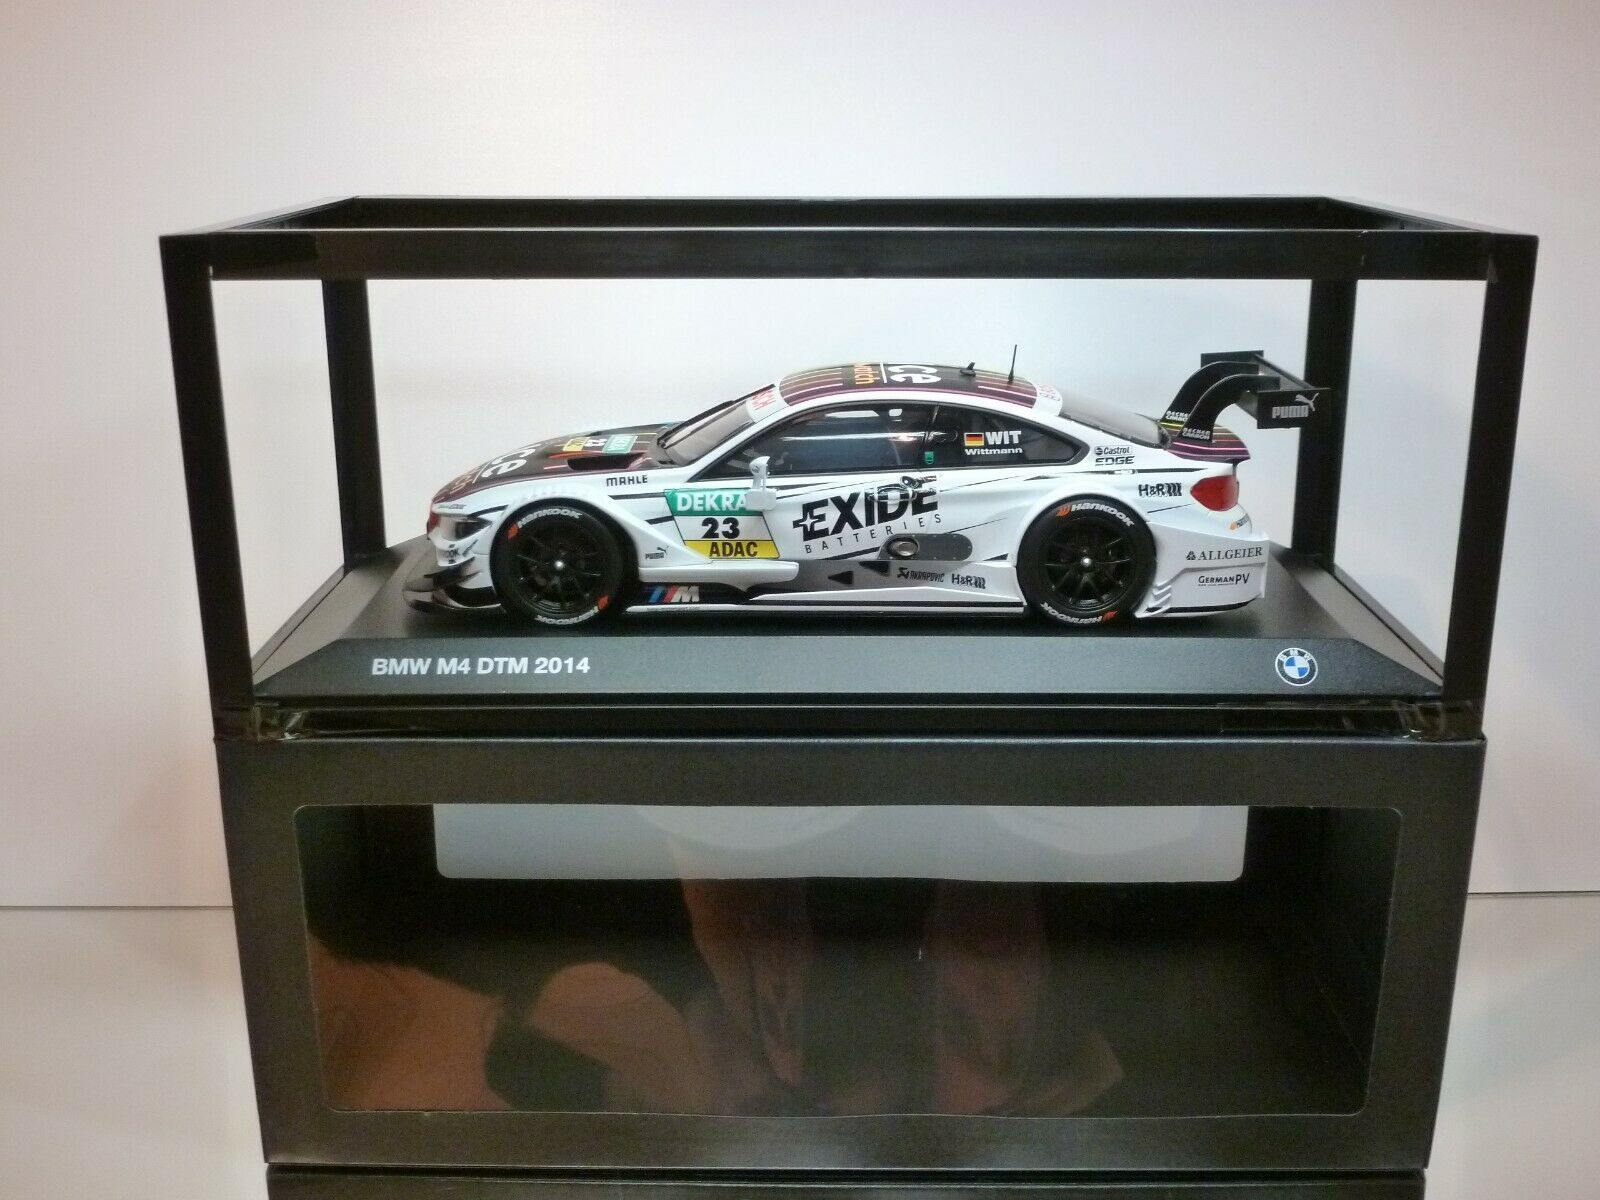 NOREV BMW M4 DTM 2014 TEAM RMG - MARCO WITTMANN - blanc 1 18 - EXCELLENT IN BOX